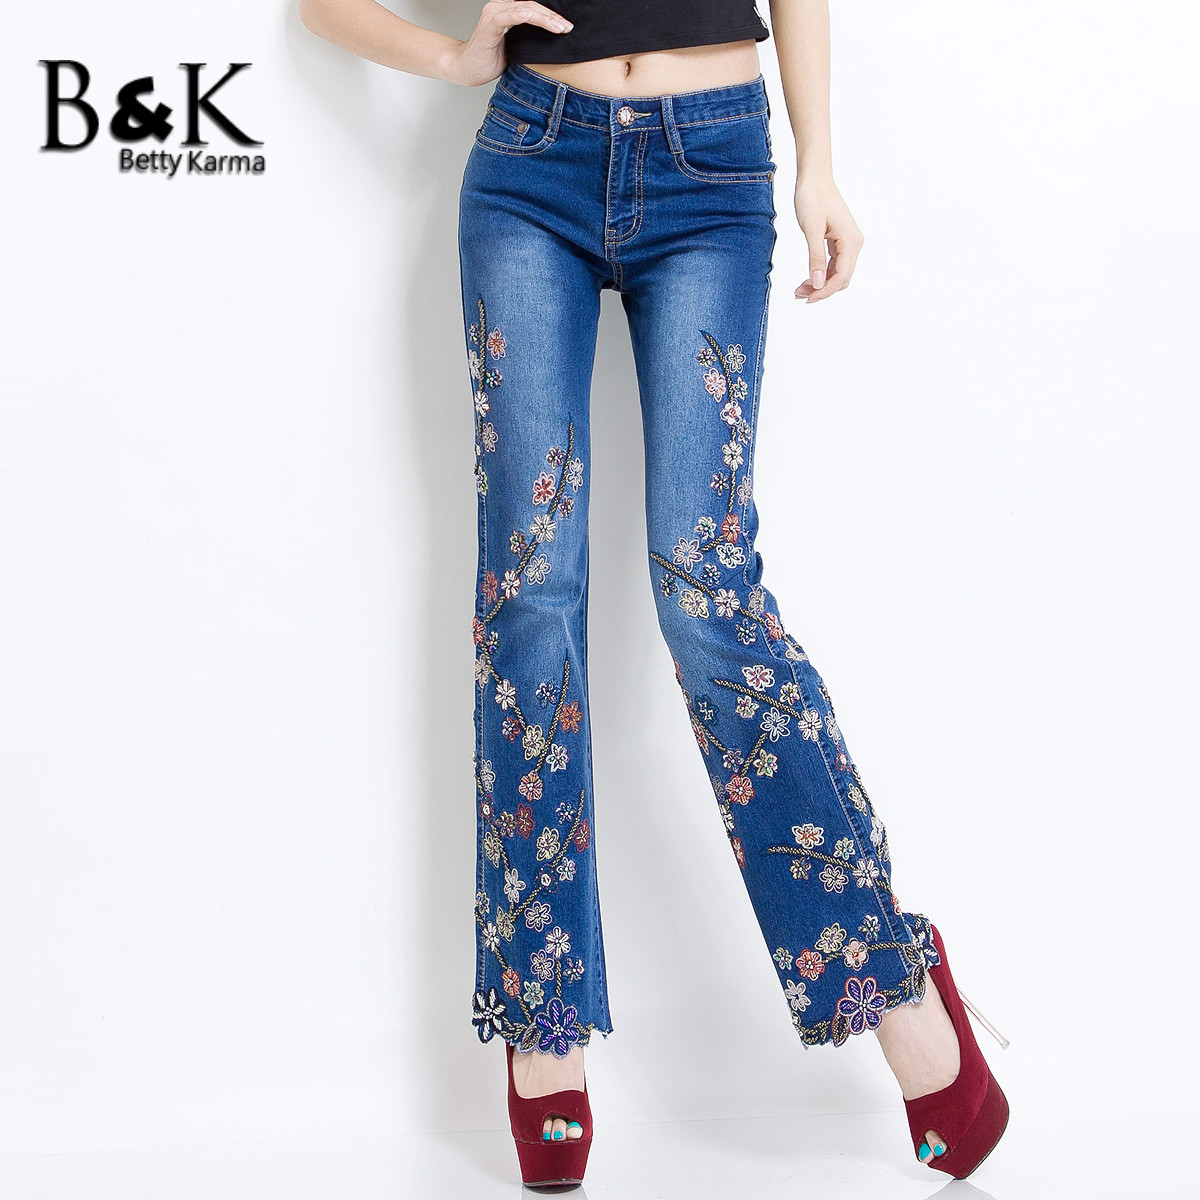 Stretch Embroidered Jeans Woman With Elastic Flower Pattern Pantalon Jeans Femme Flare Denim Pants Plus Size High Waist Jeans